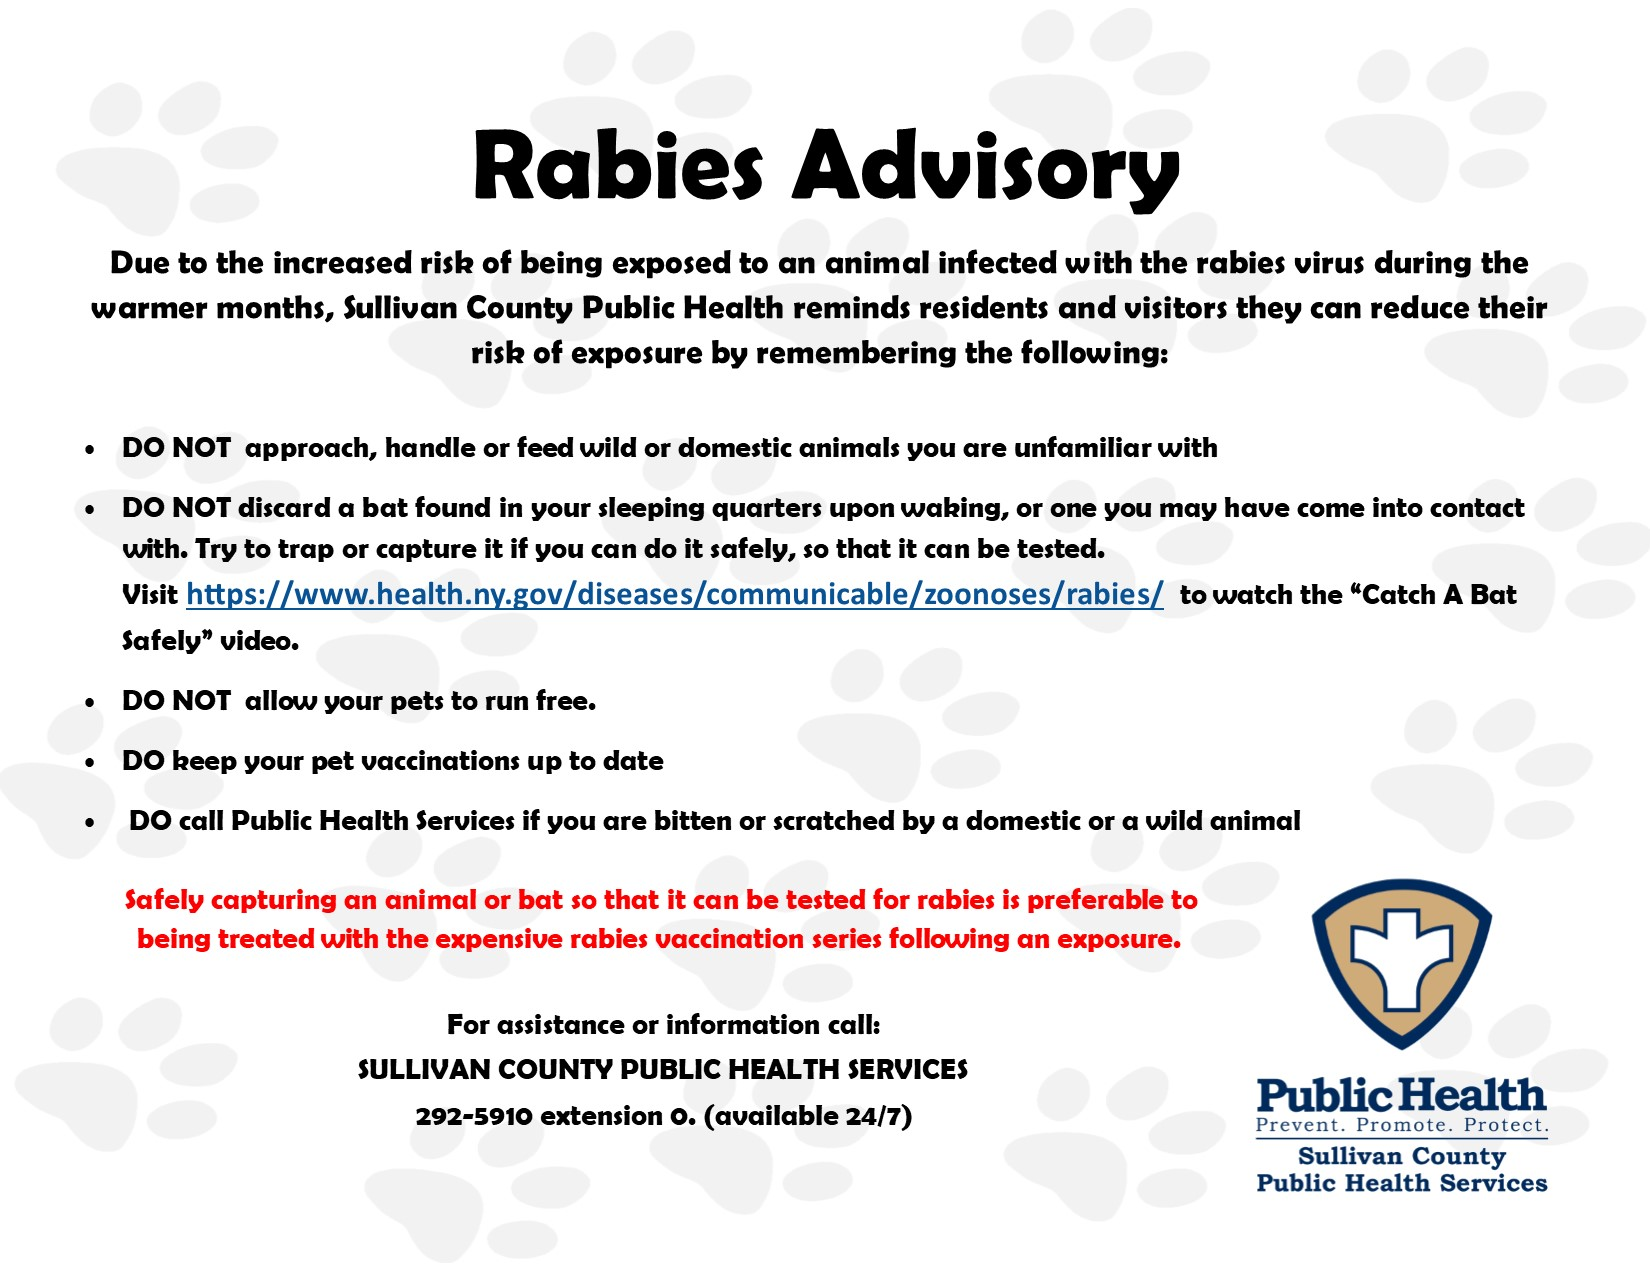 Rabies Advisory and Prevention